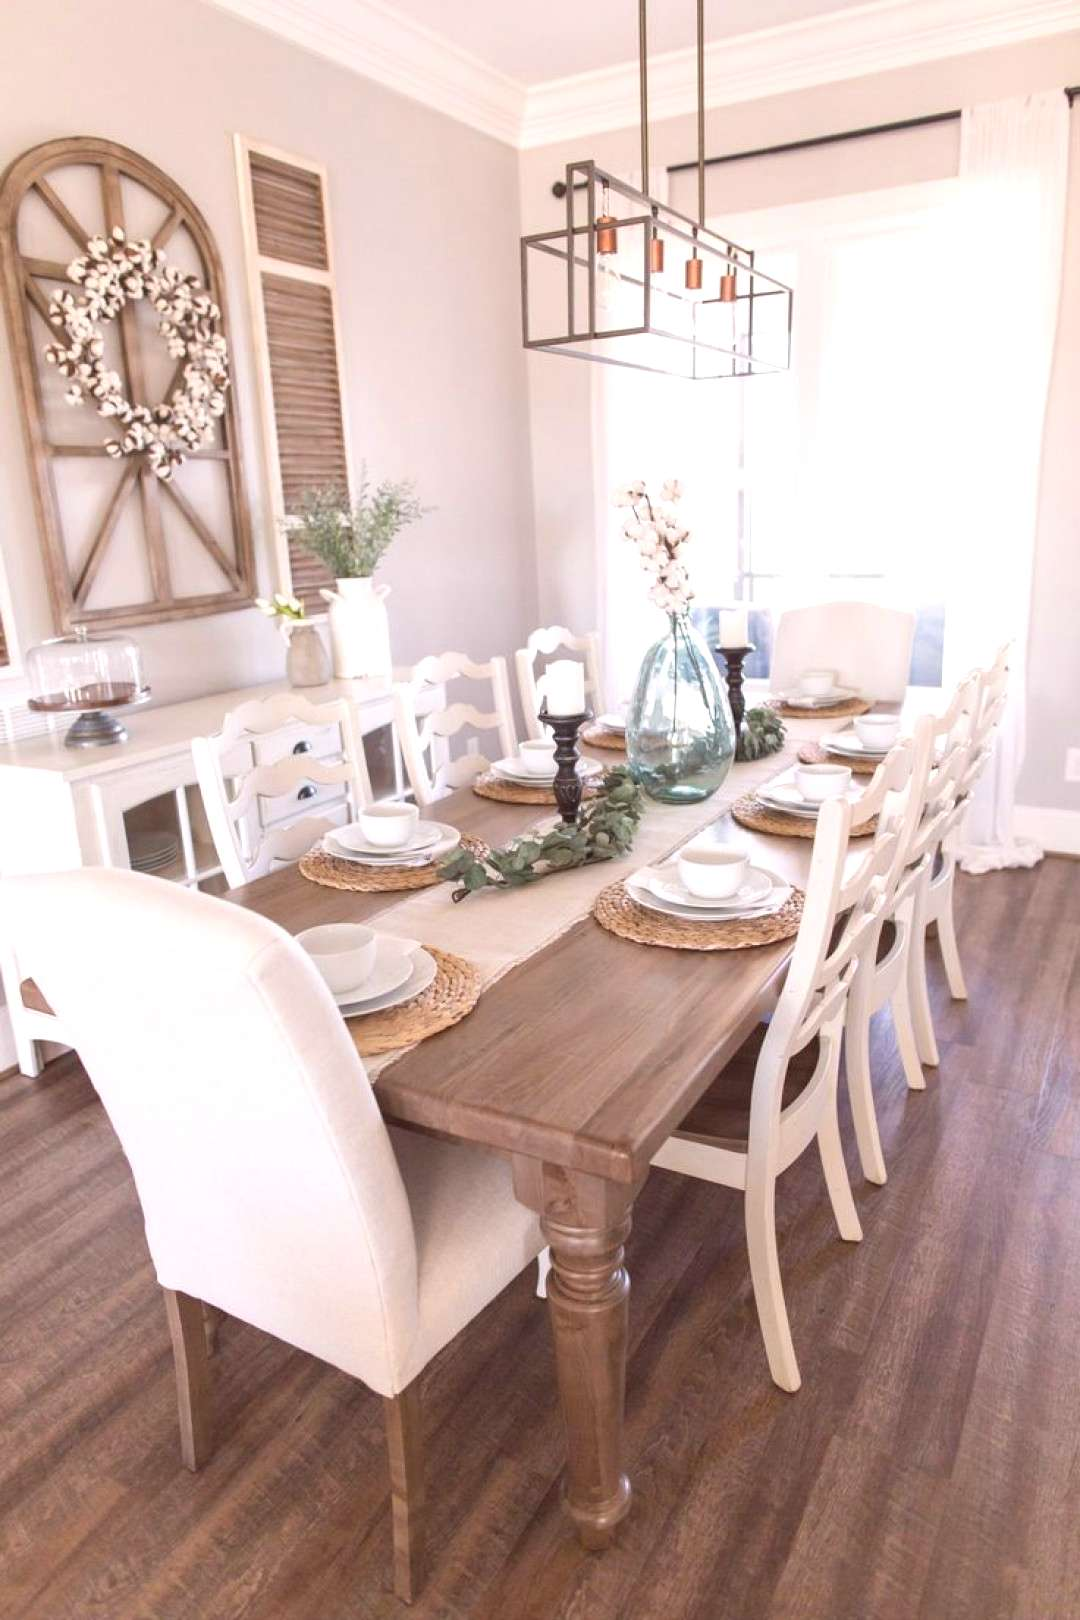 Spring Farmhouse Dining Room Table Ideas, Place Setting, Cotton, Decor, Inspiration, Decorating, Mo